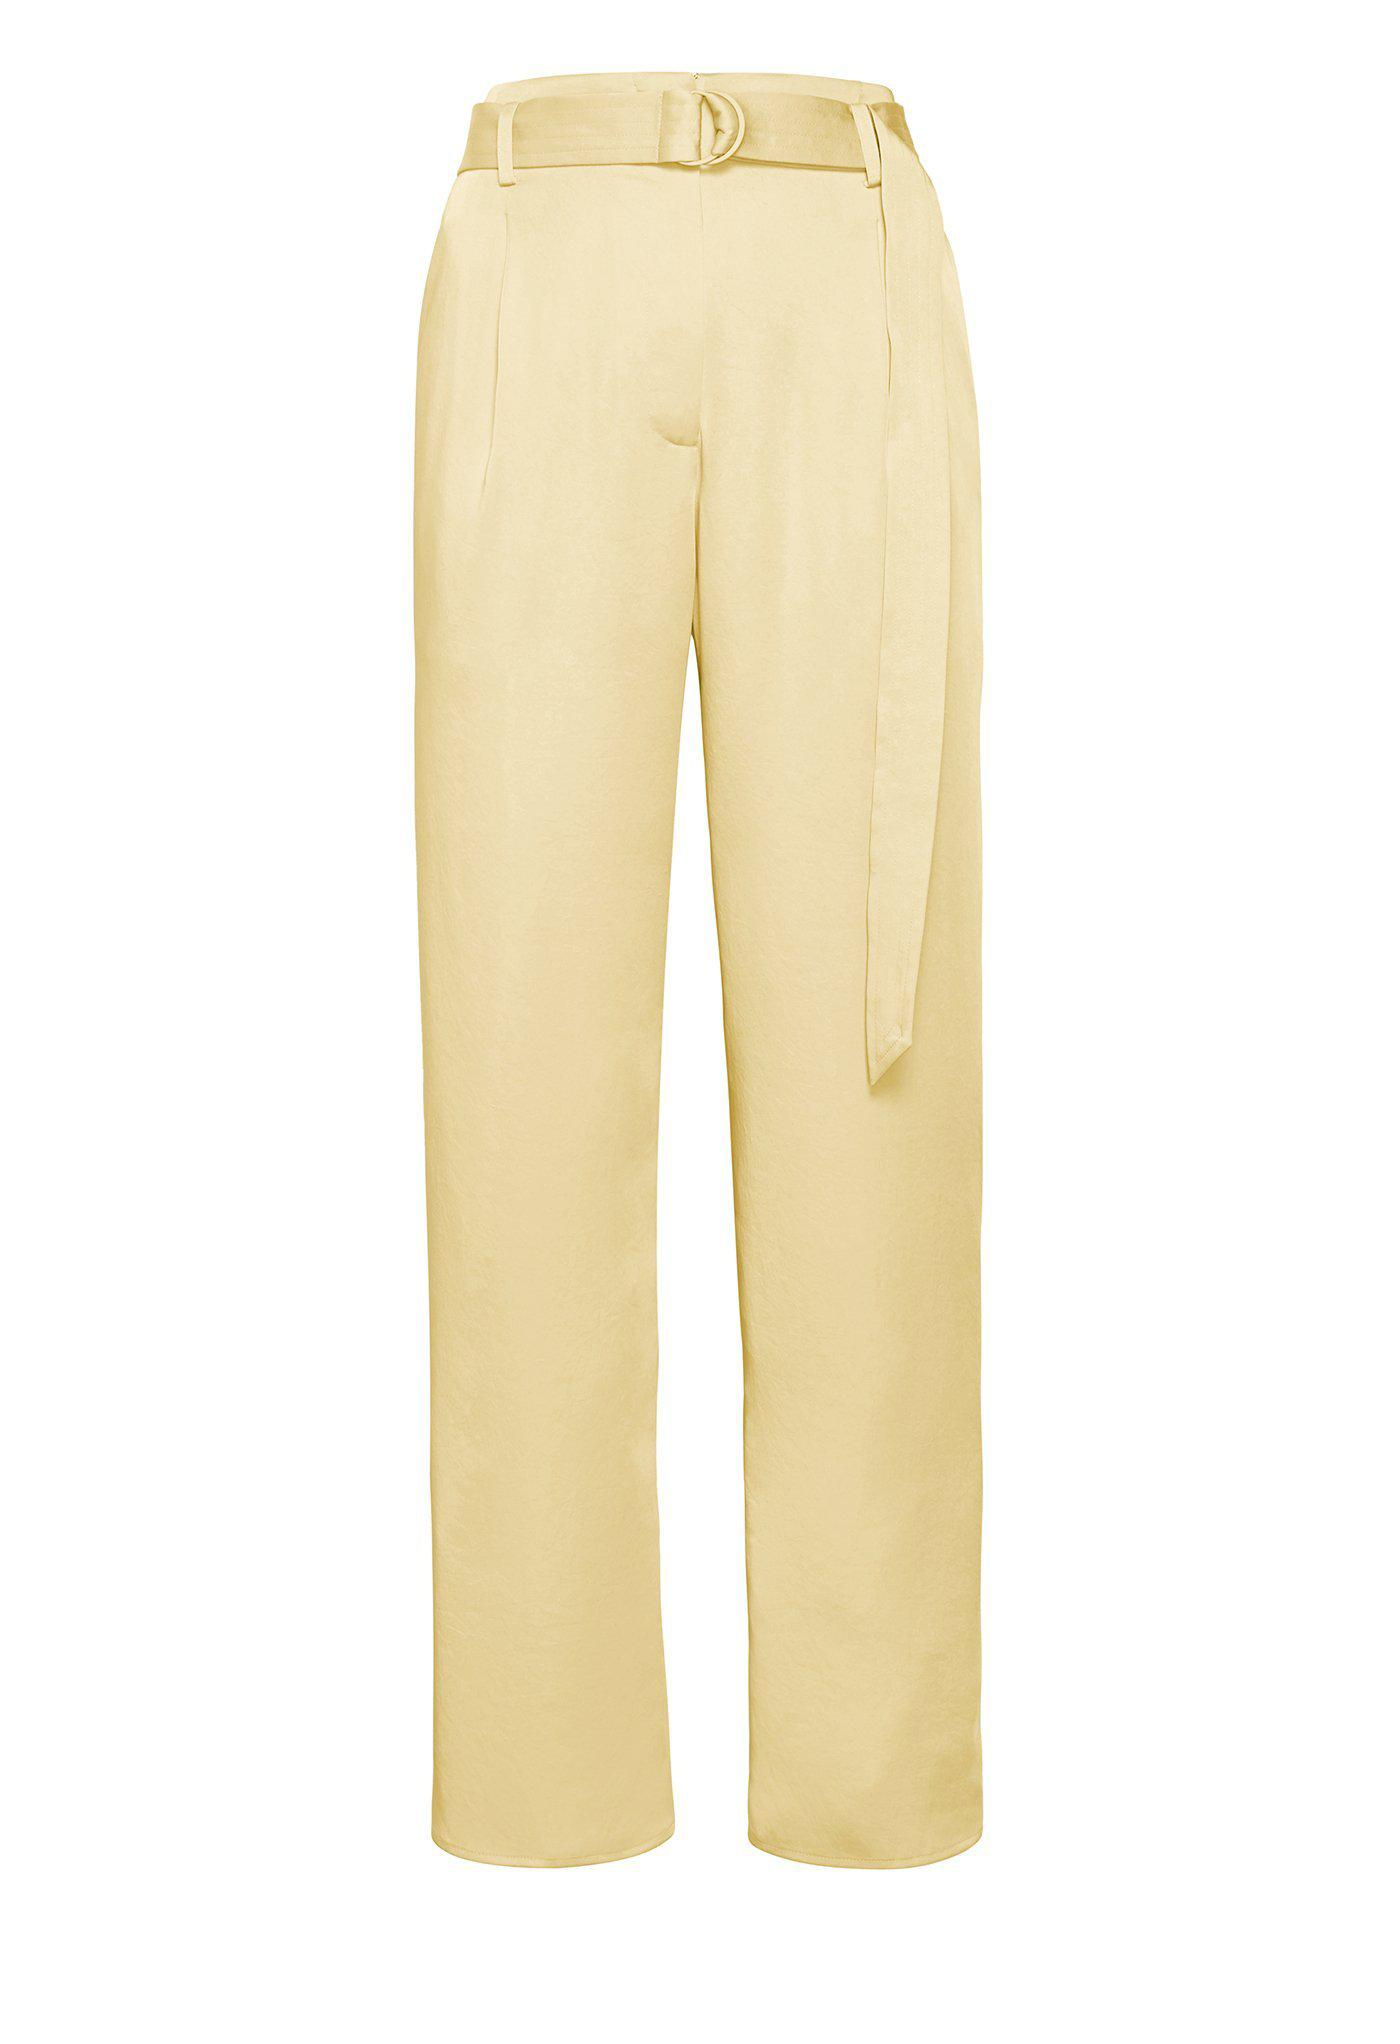 SATIN BELTED CROPPED PANT